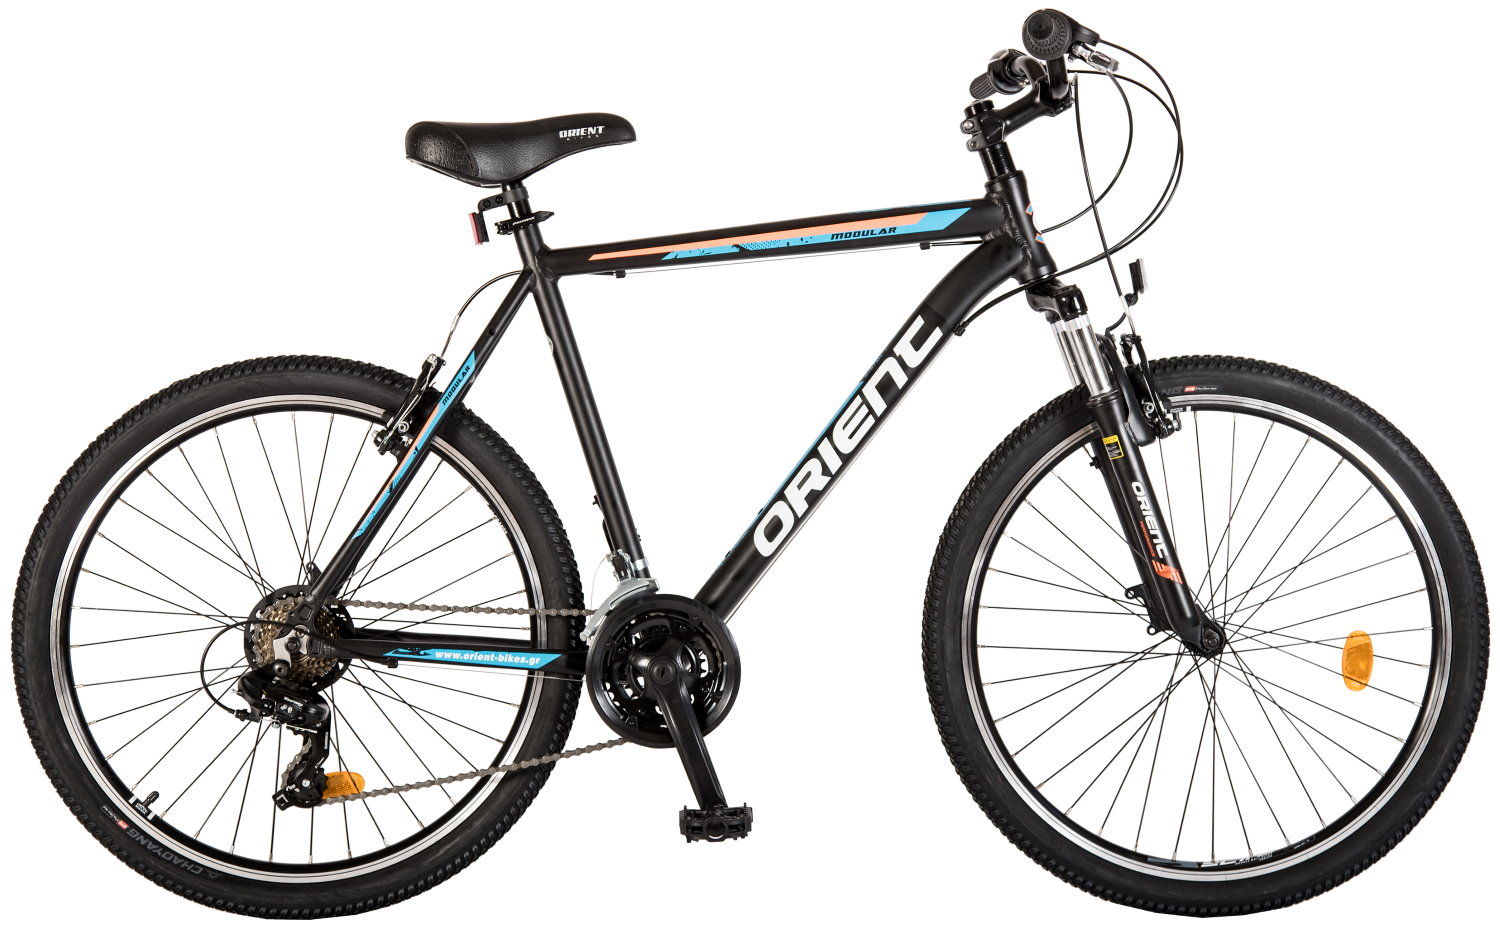 MODULAR man 26″ 21sp. bike image